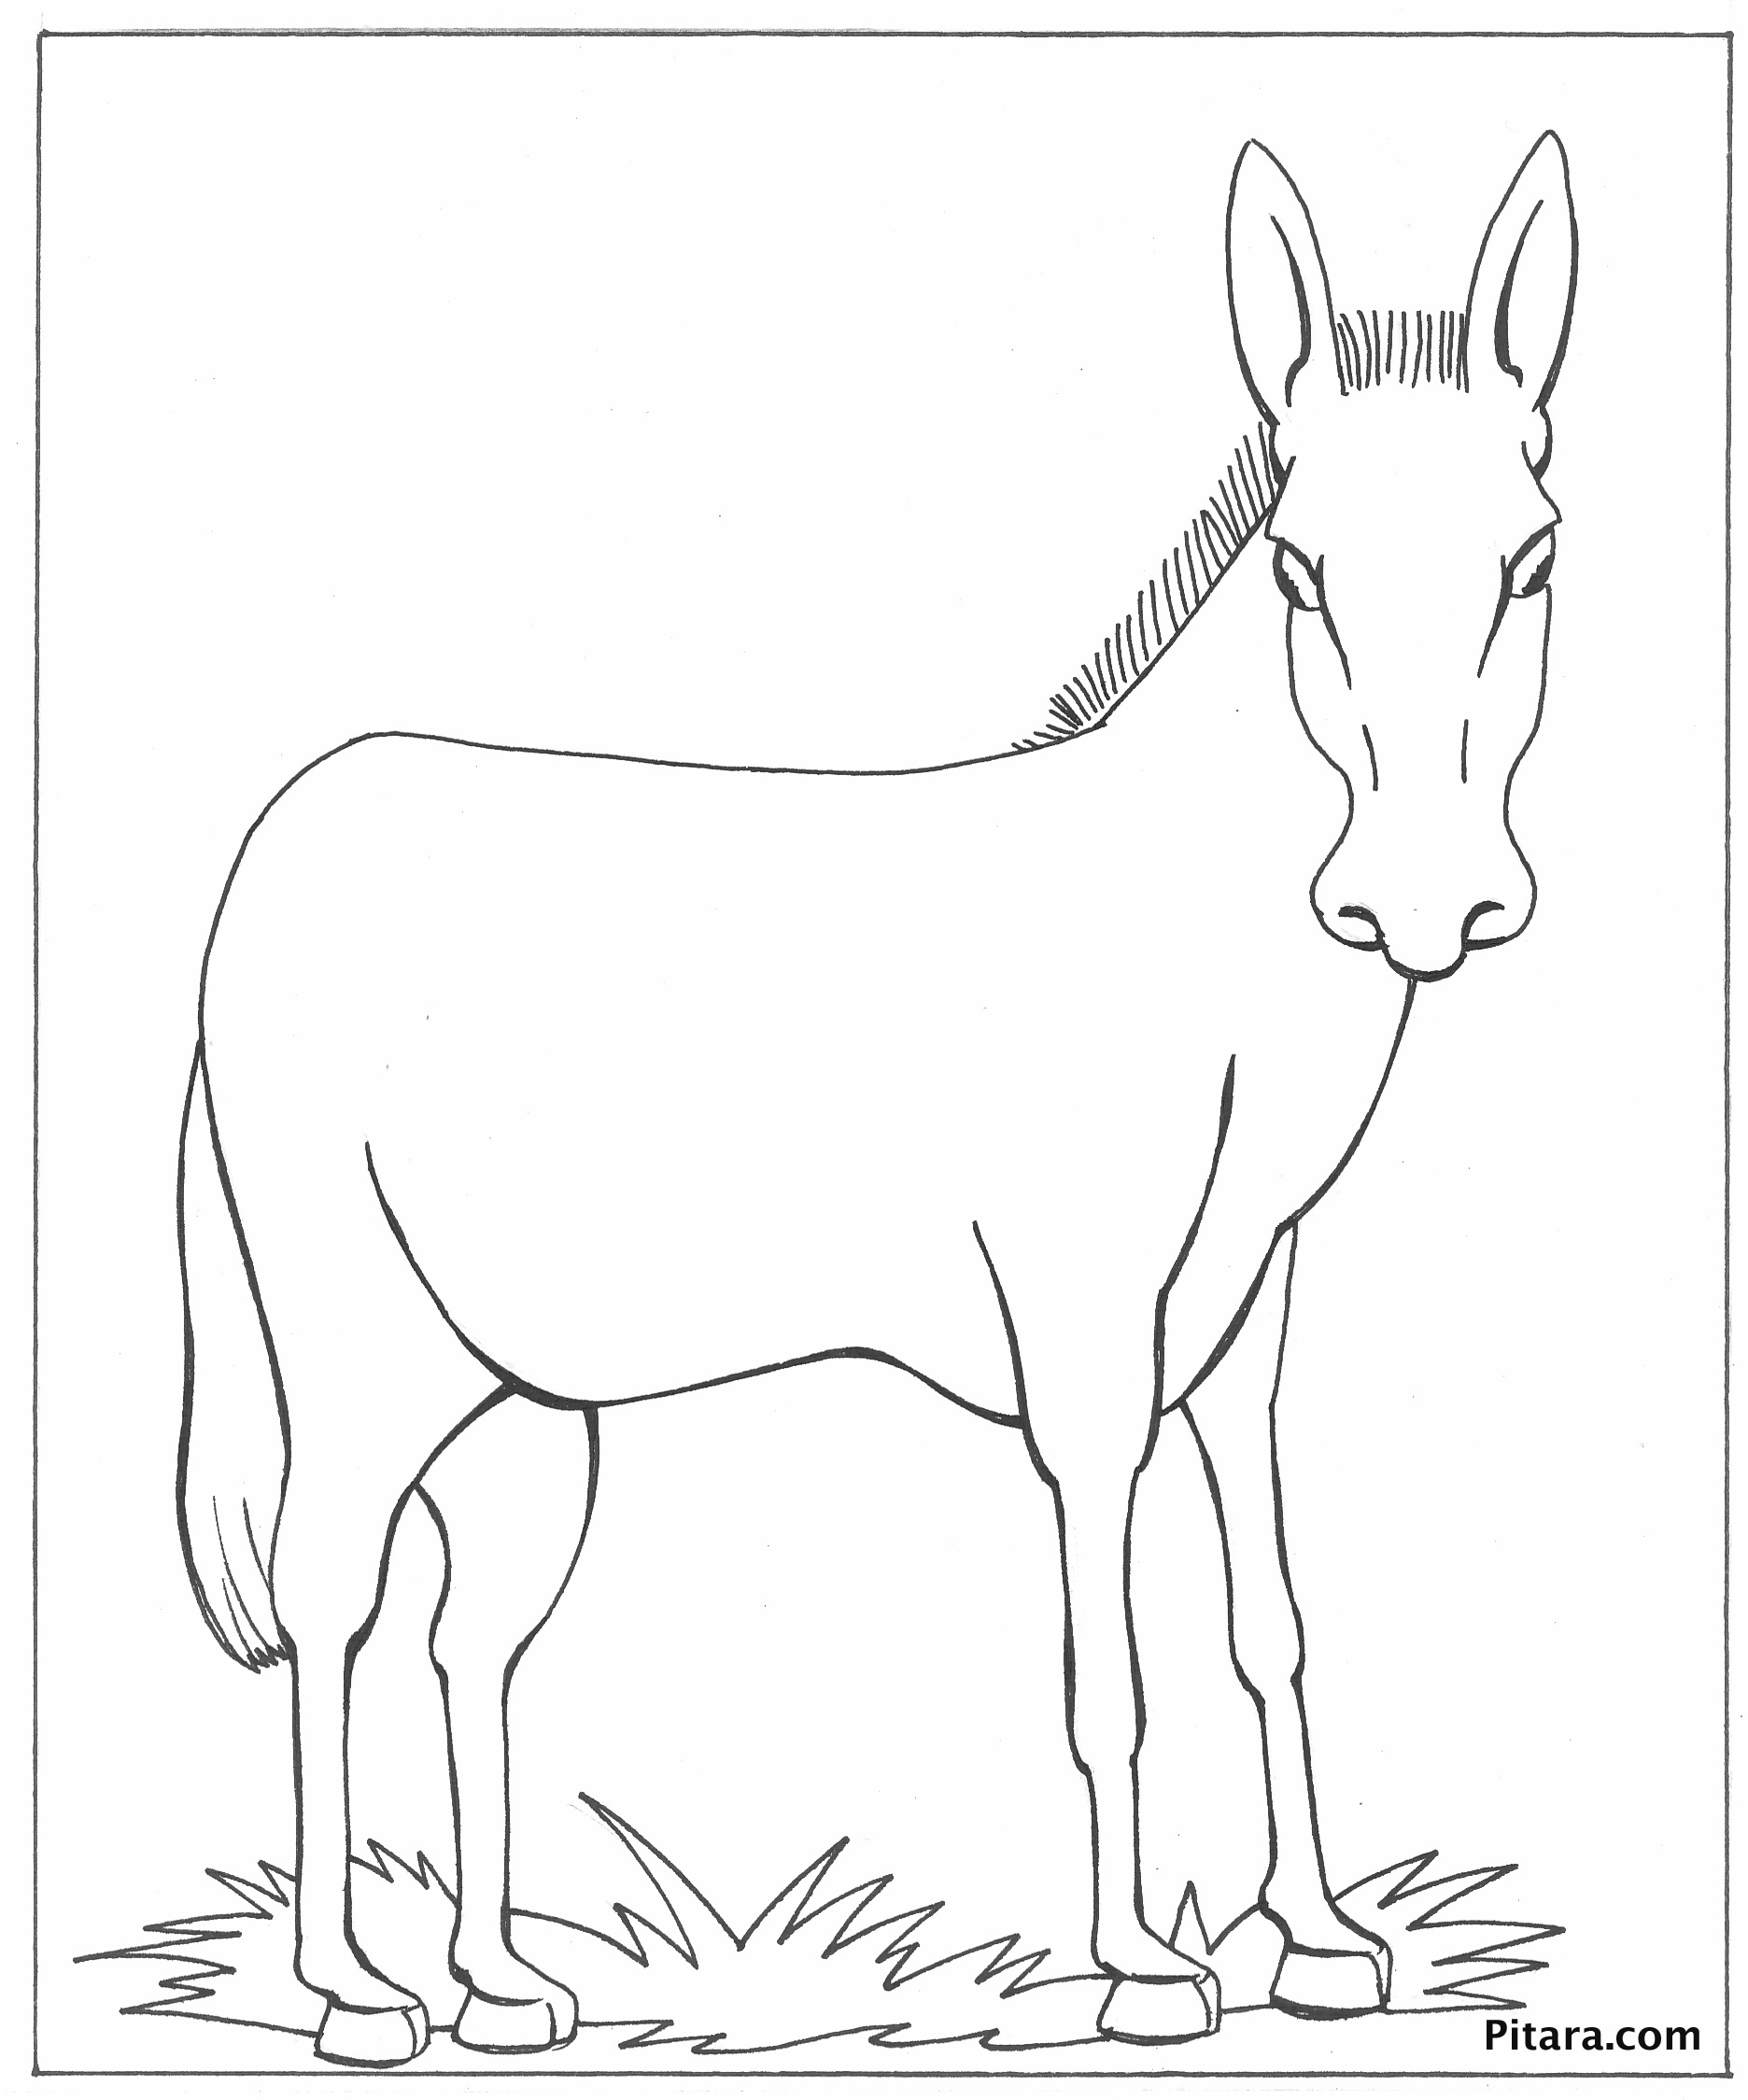 Donkey coloring page pitara kids network for Donkey coloring page